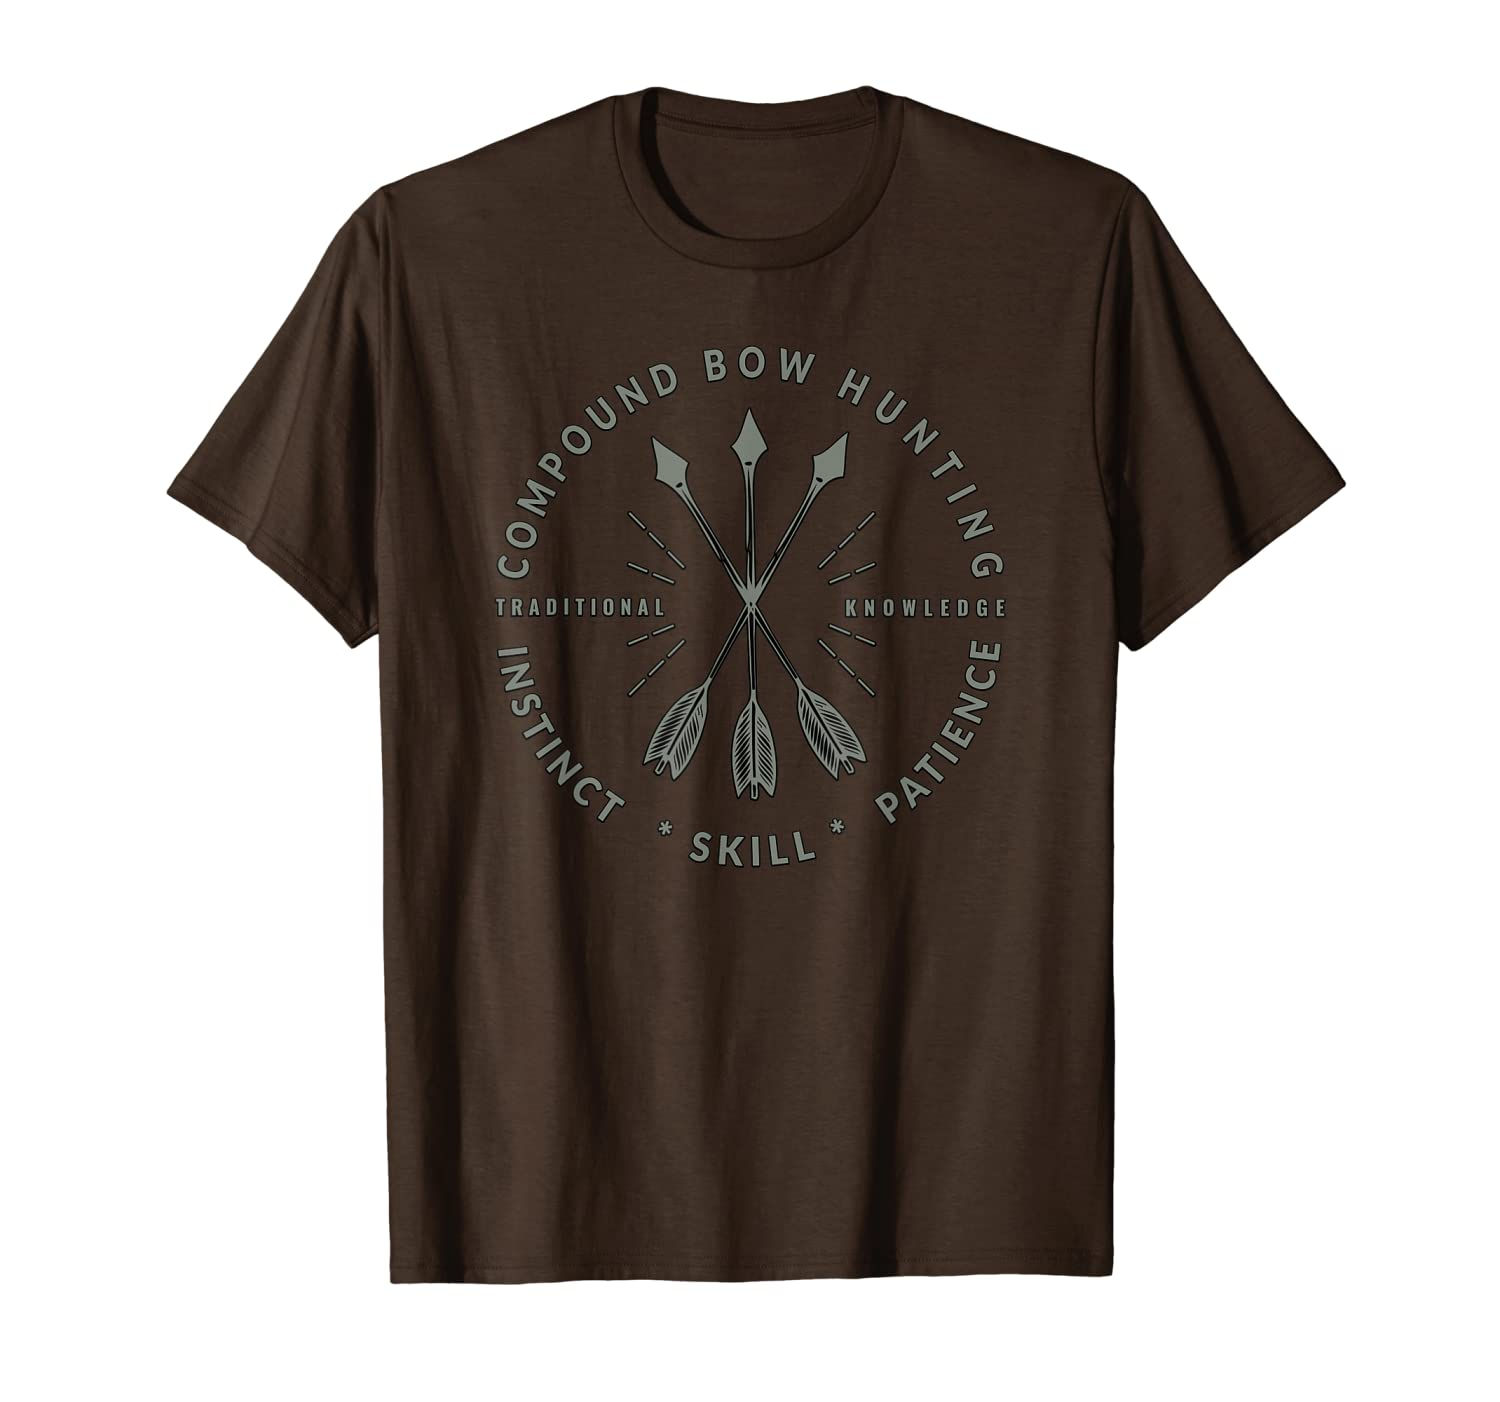 Compound Bow Hunting T-Shirt, Archery Bow Hunter Gift Unisex Tshirt